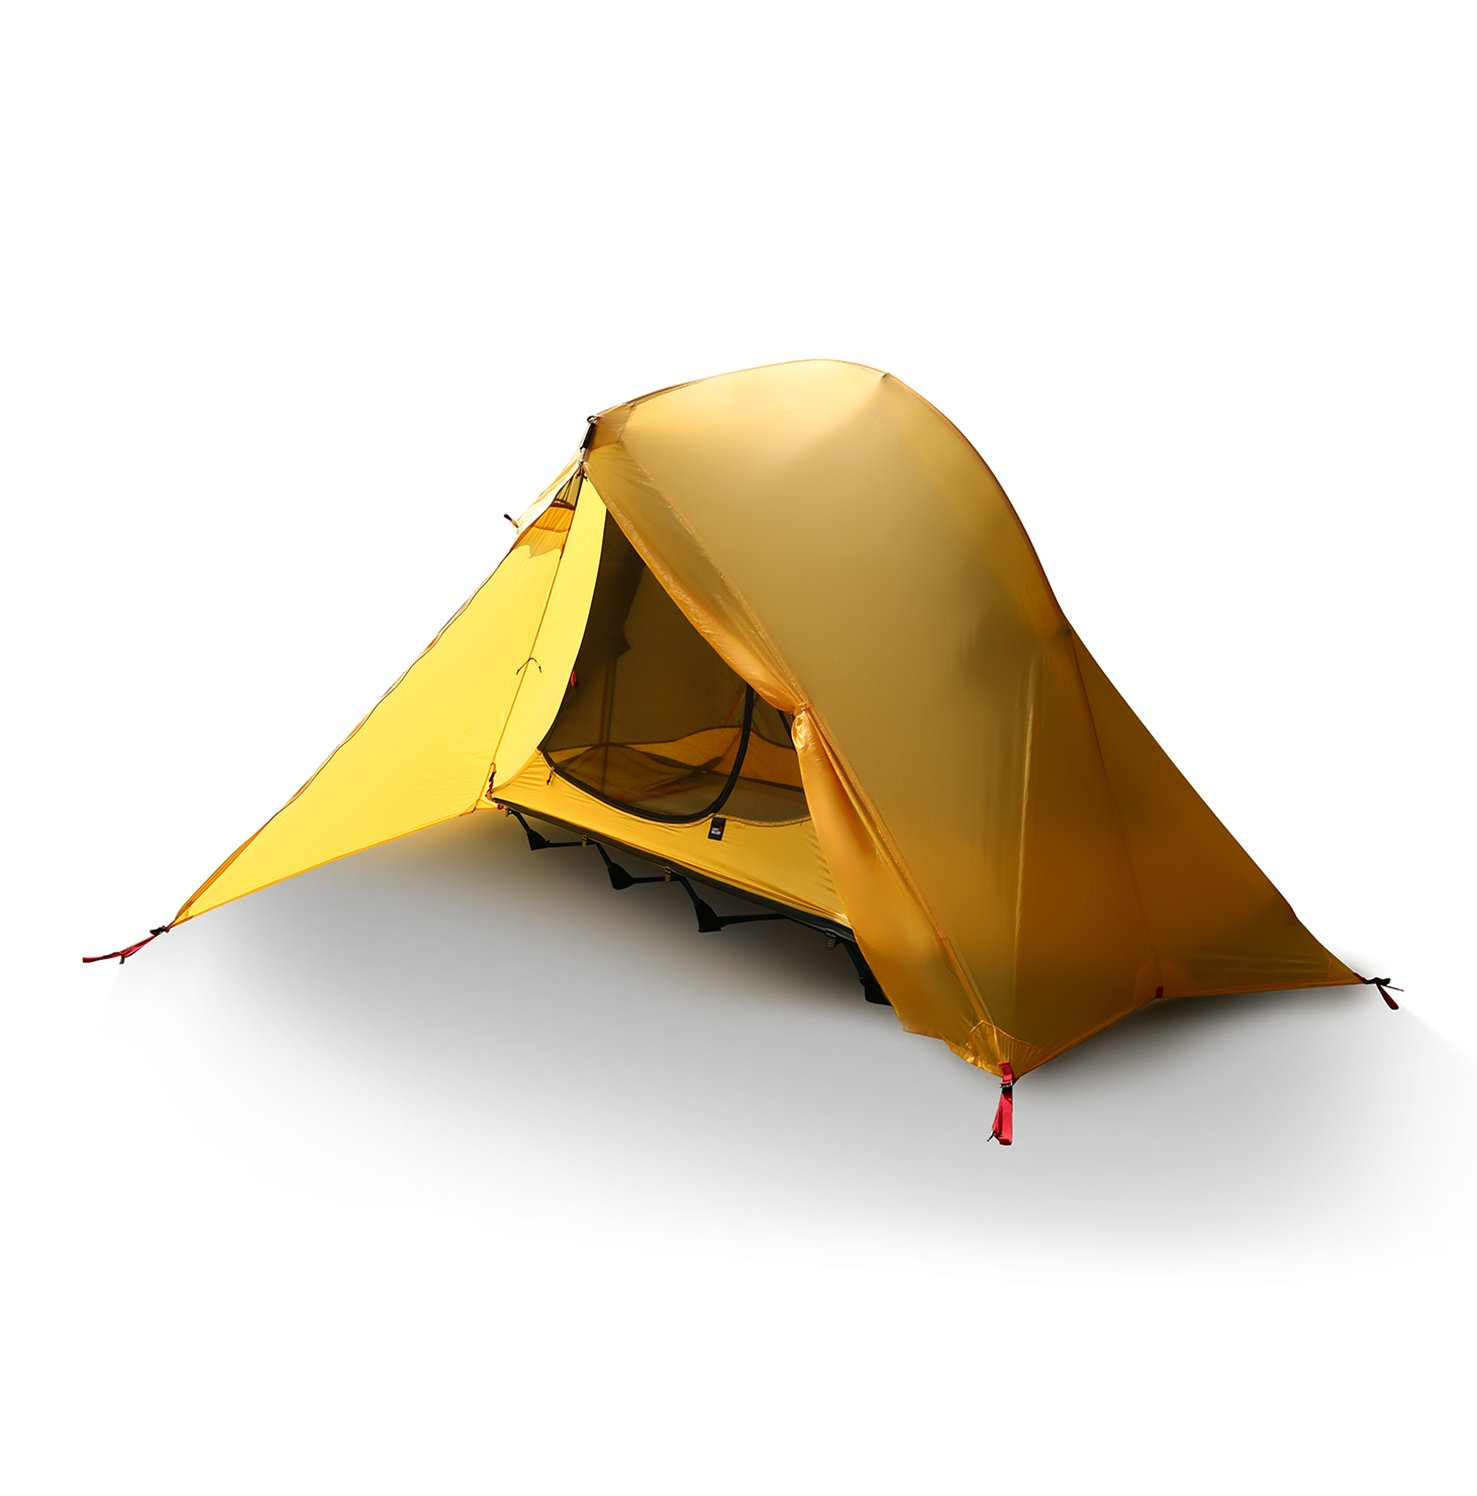 OUTAD Camping tents 15D nylon double-sided silicone tents Portable Multifunctional Off Ground Tent by OUTAD (Image #1)